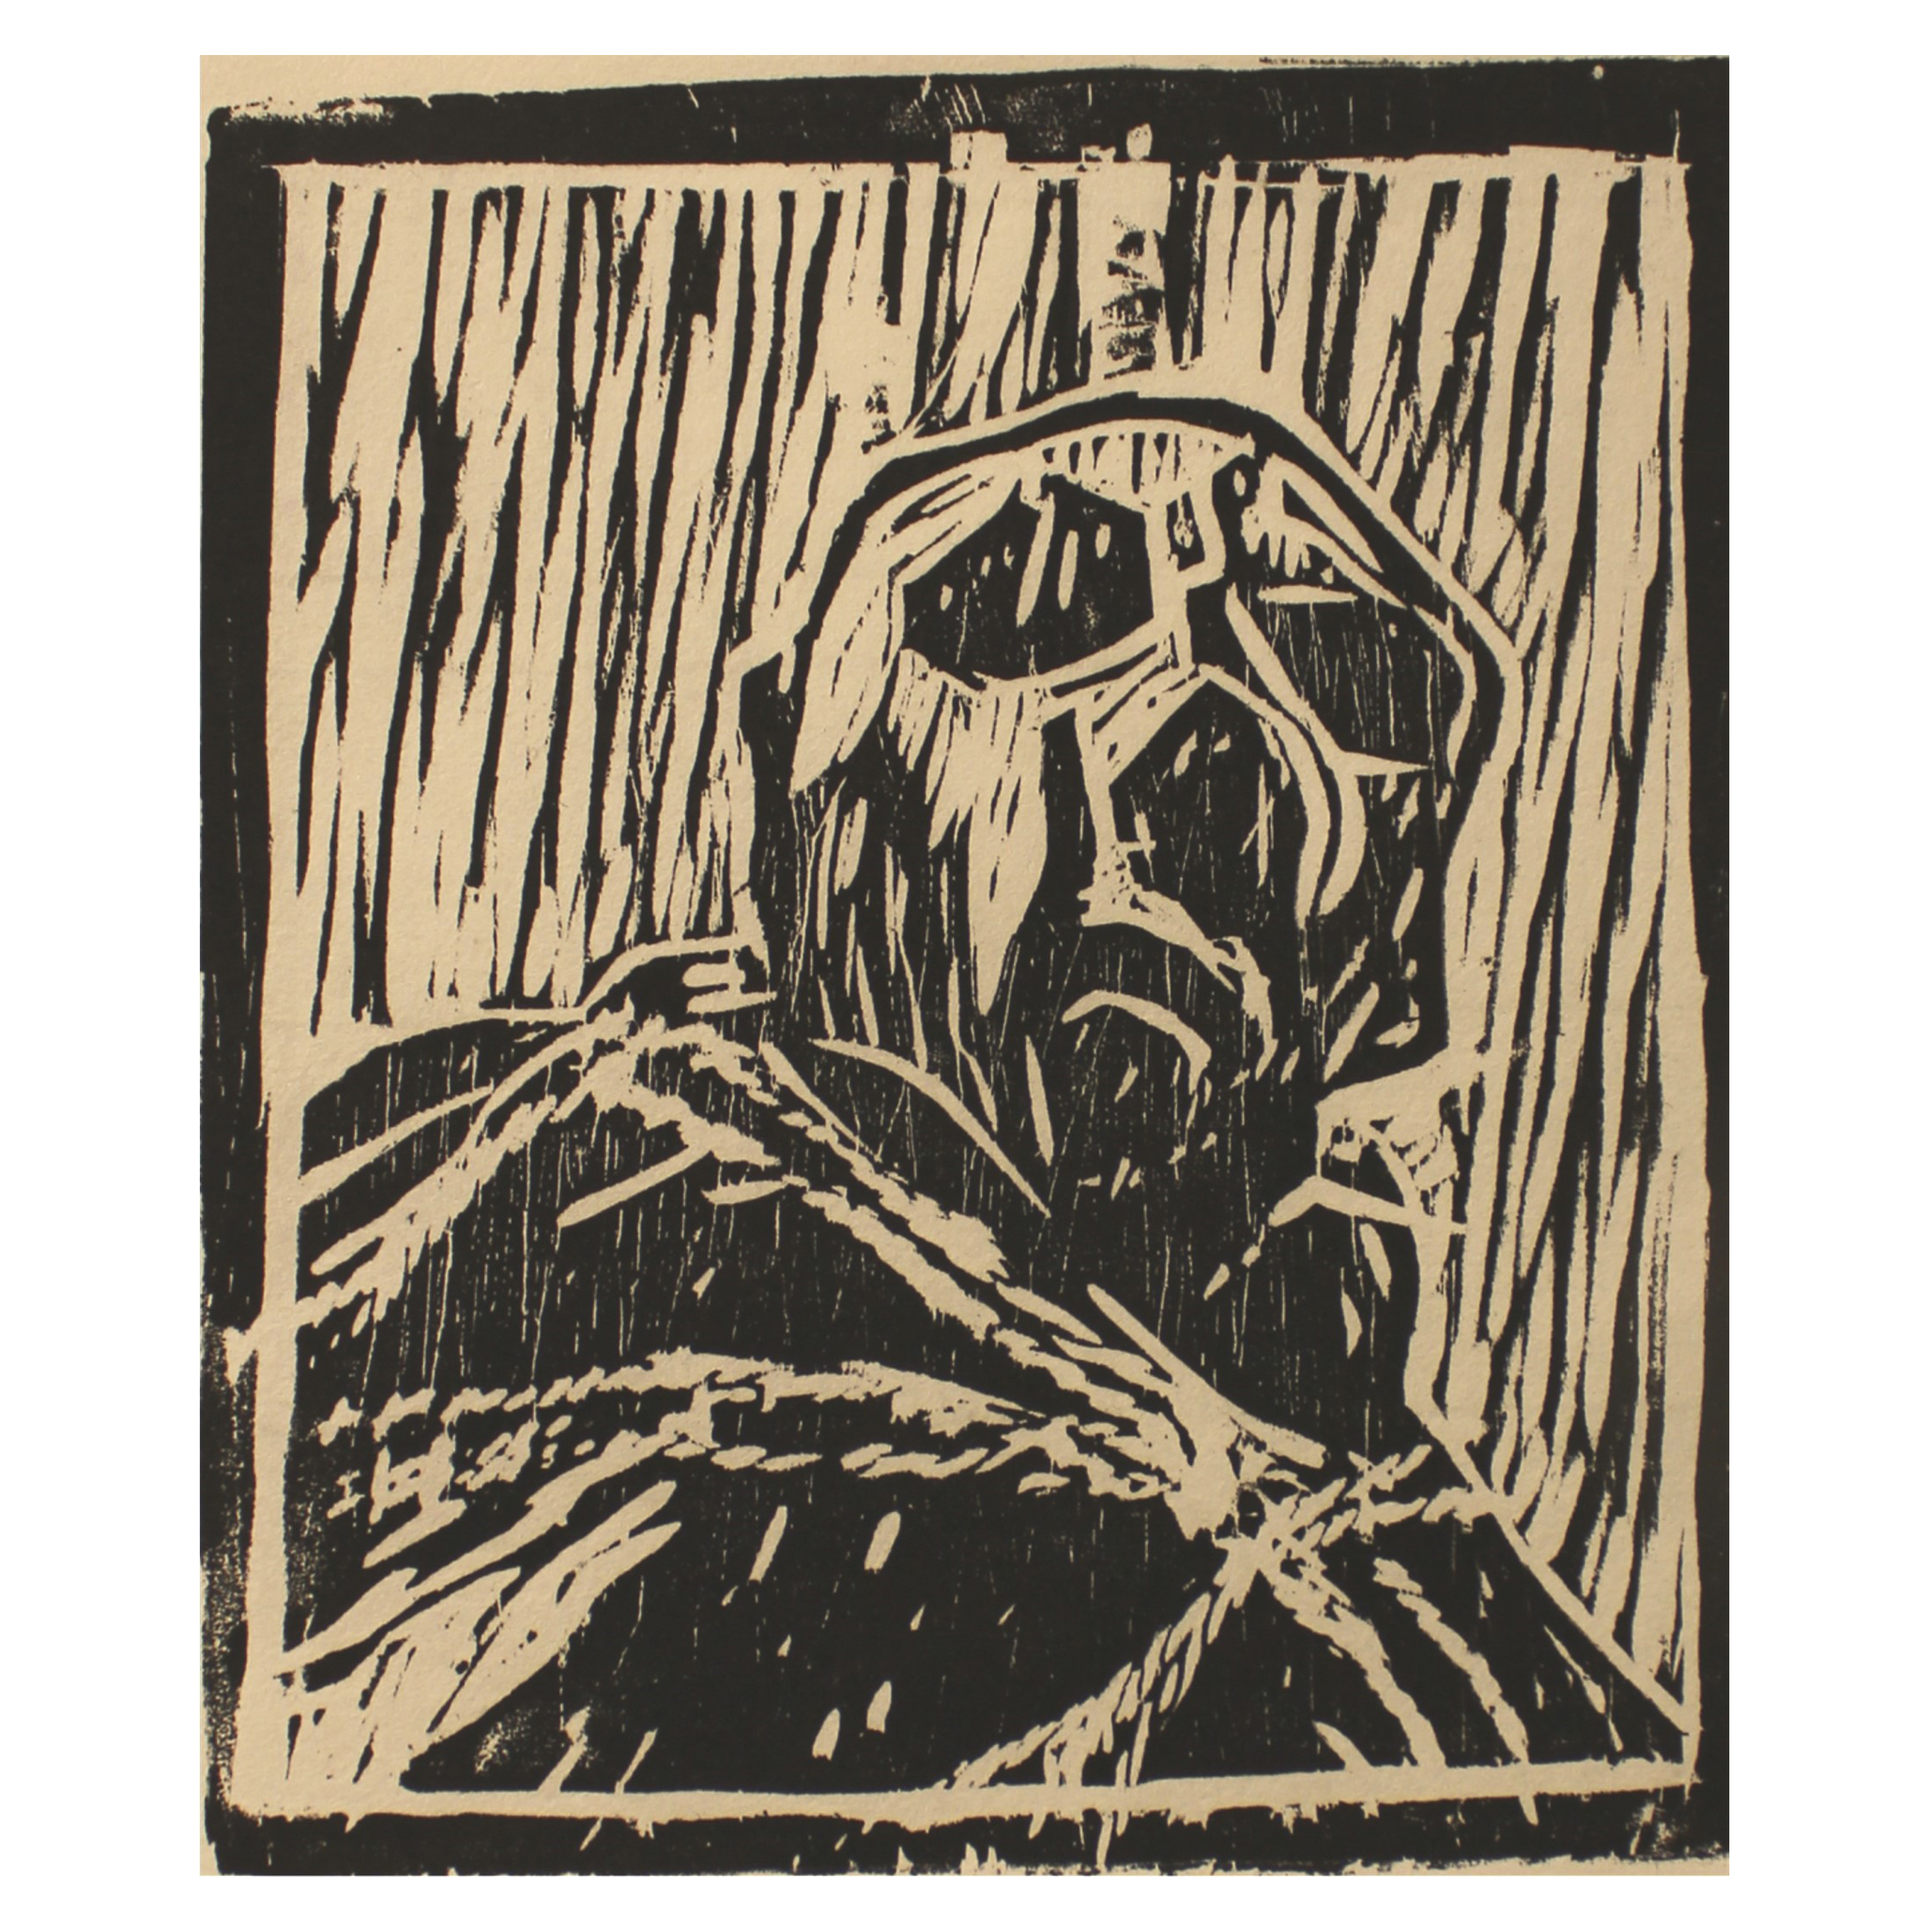 Roger Sutcliffe, The Damned, 2015, woodcut, hand printed Mulberry paper